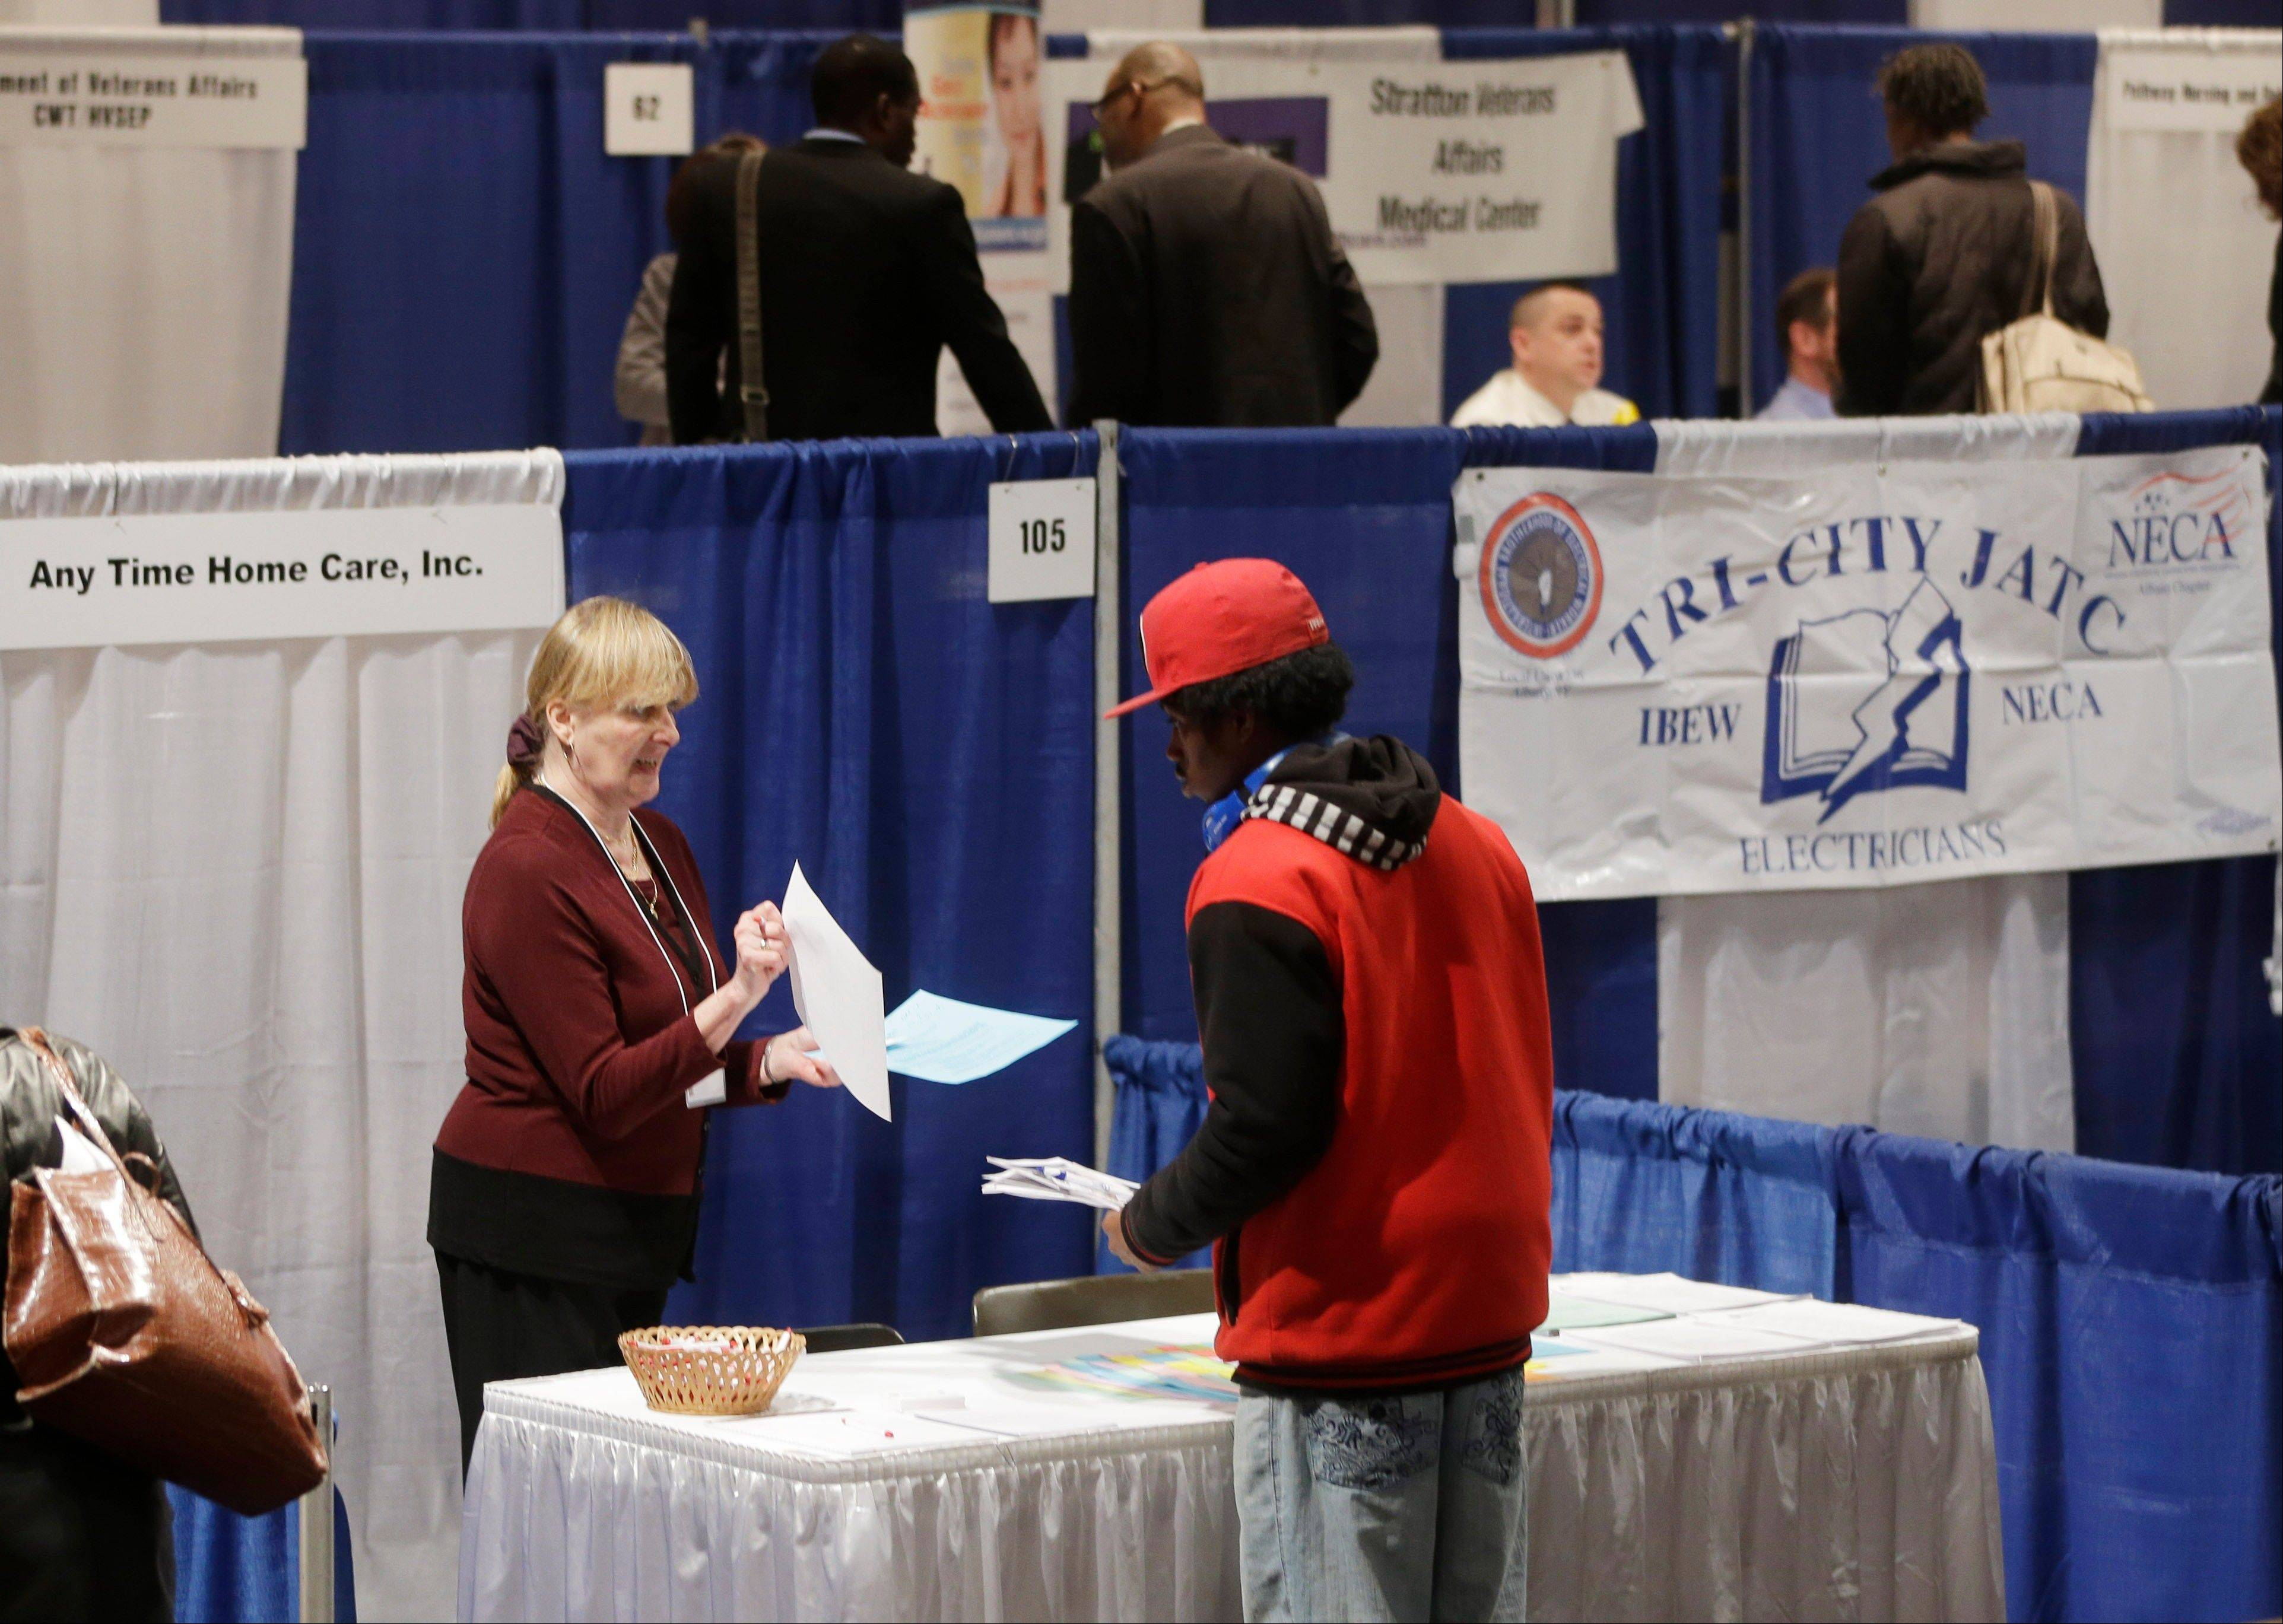 Kathie Maiello of Any-Time Home Care, left, talks with Jashod Chaney, of Albany, at the Dr. King Career Fair at the Empire State Plaza Convention Center, in Albany, N.Y. Payroll processor ADP said Wednesday, June 5, 2013, that companies added 135,000 jobs in May.